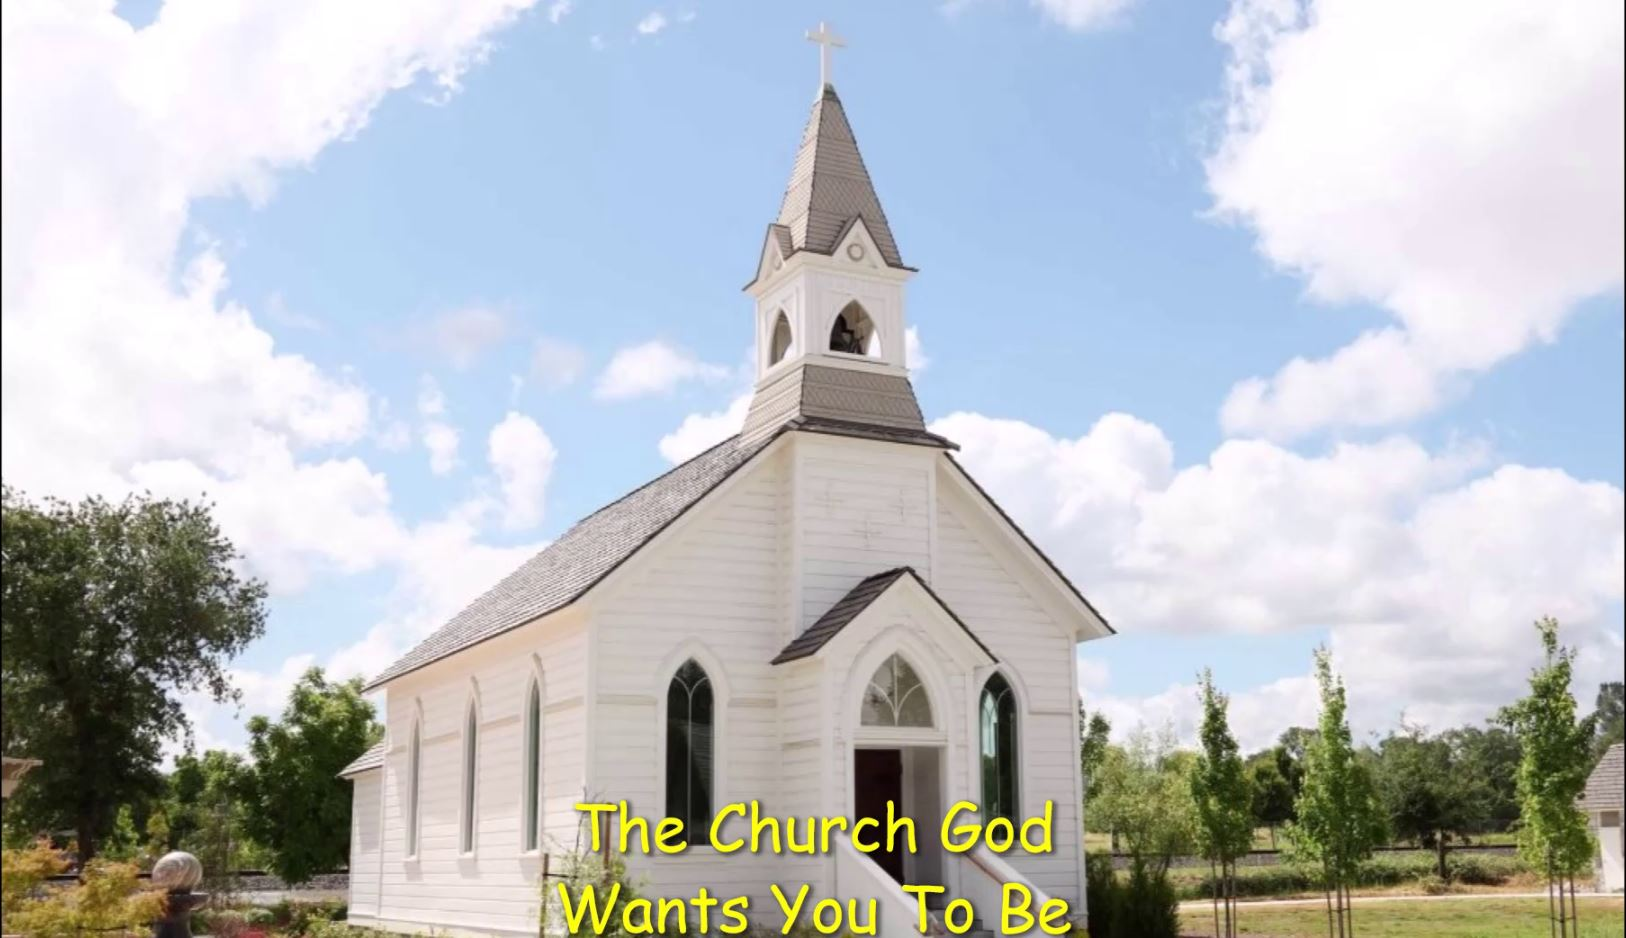 The Church God Wants You To Be